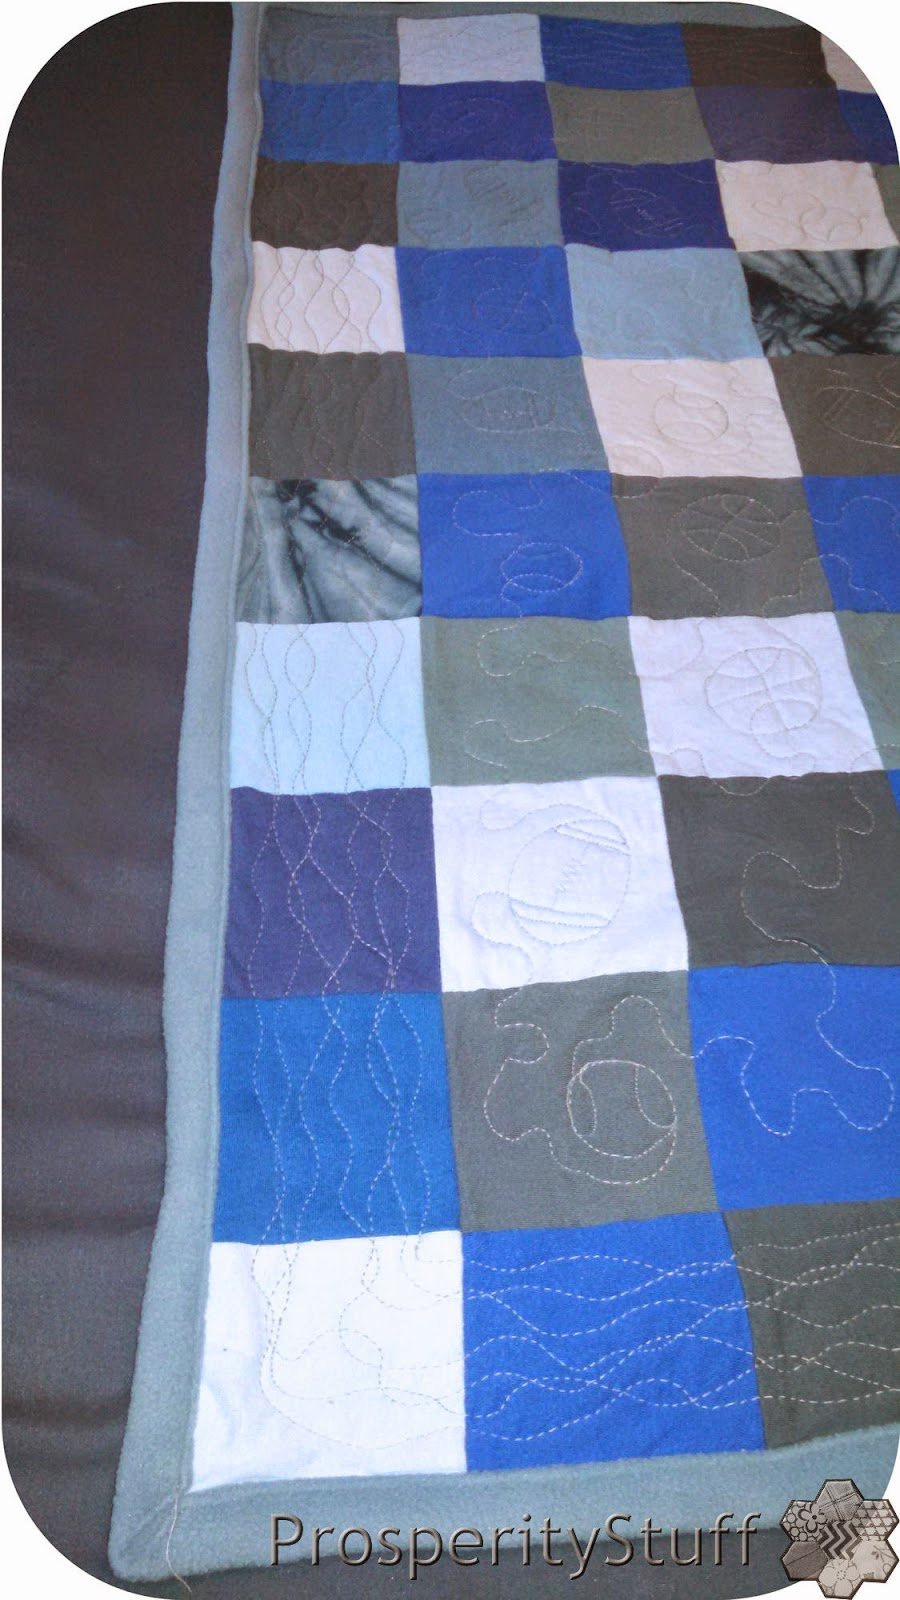 ProsperityStuff Quilts: Free-motion quilting wiggly border